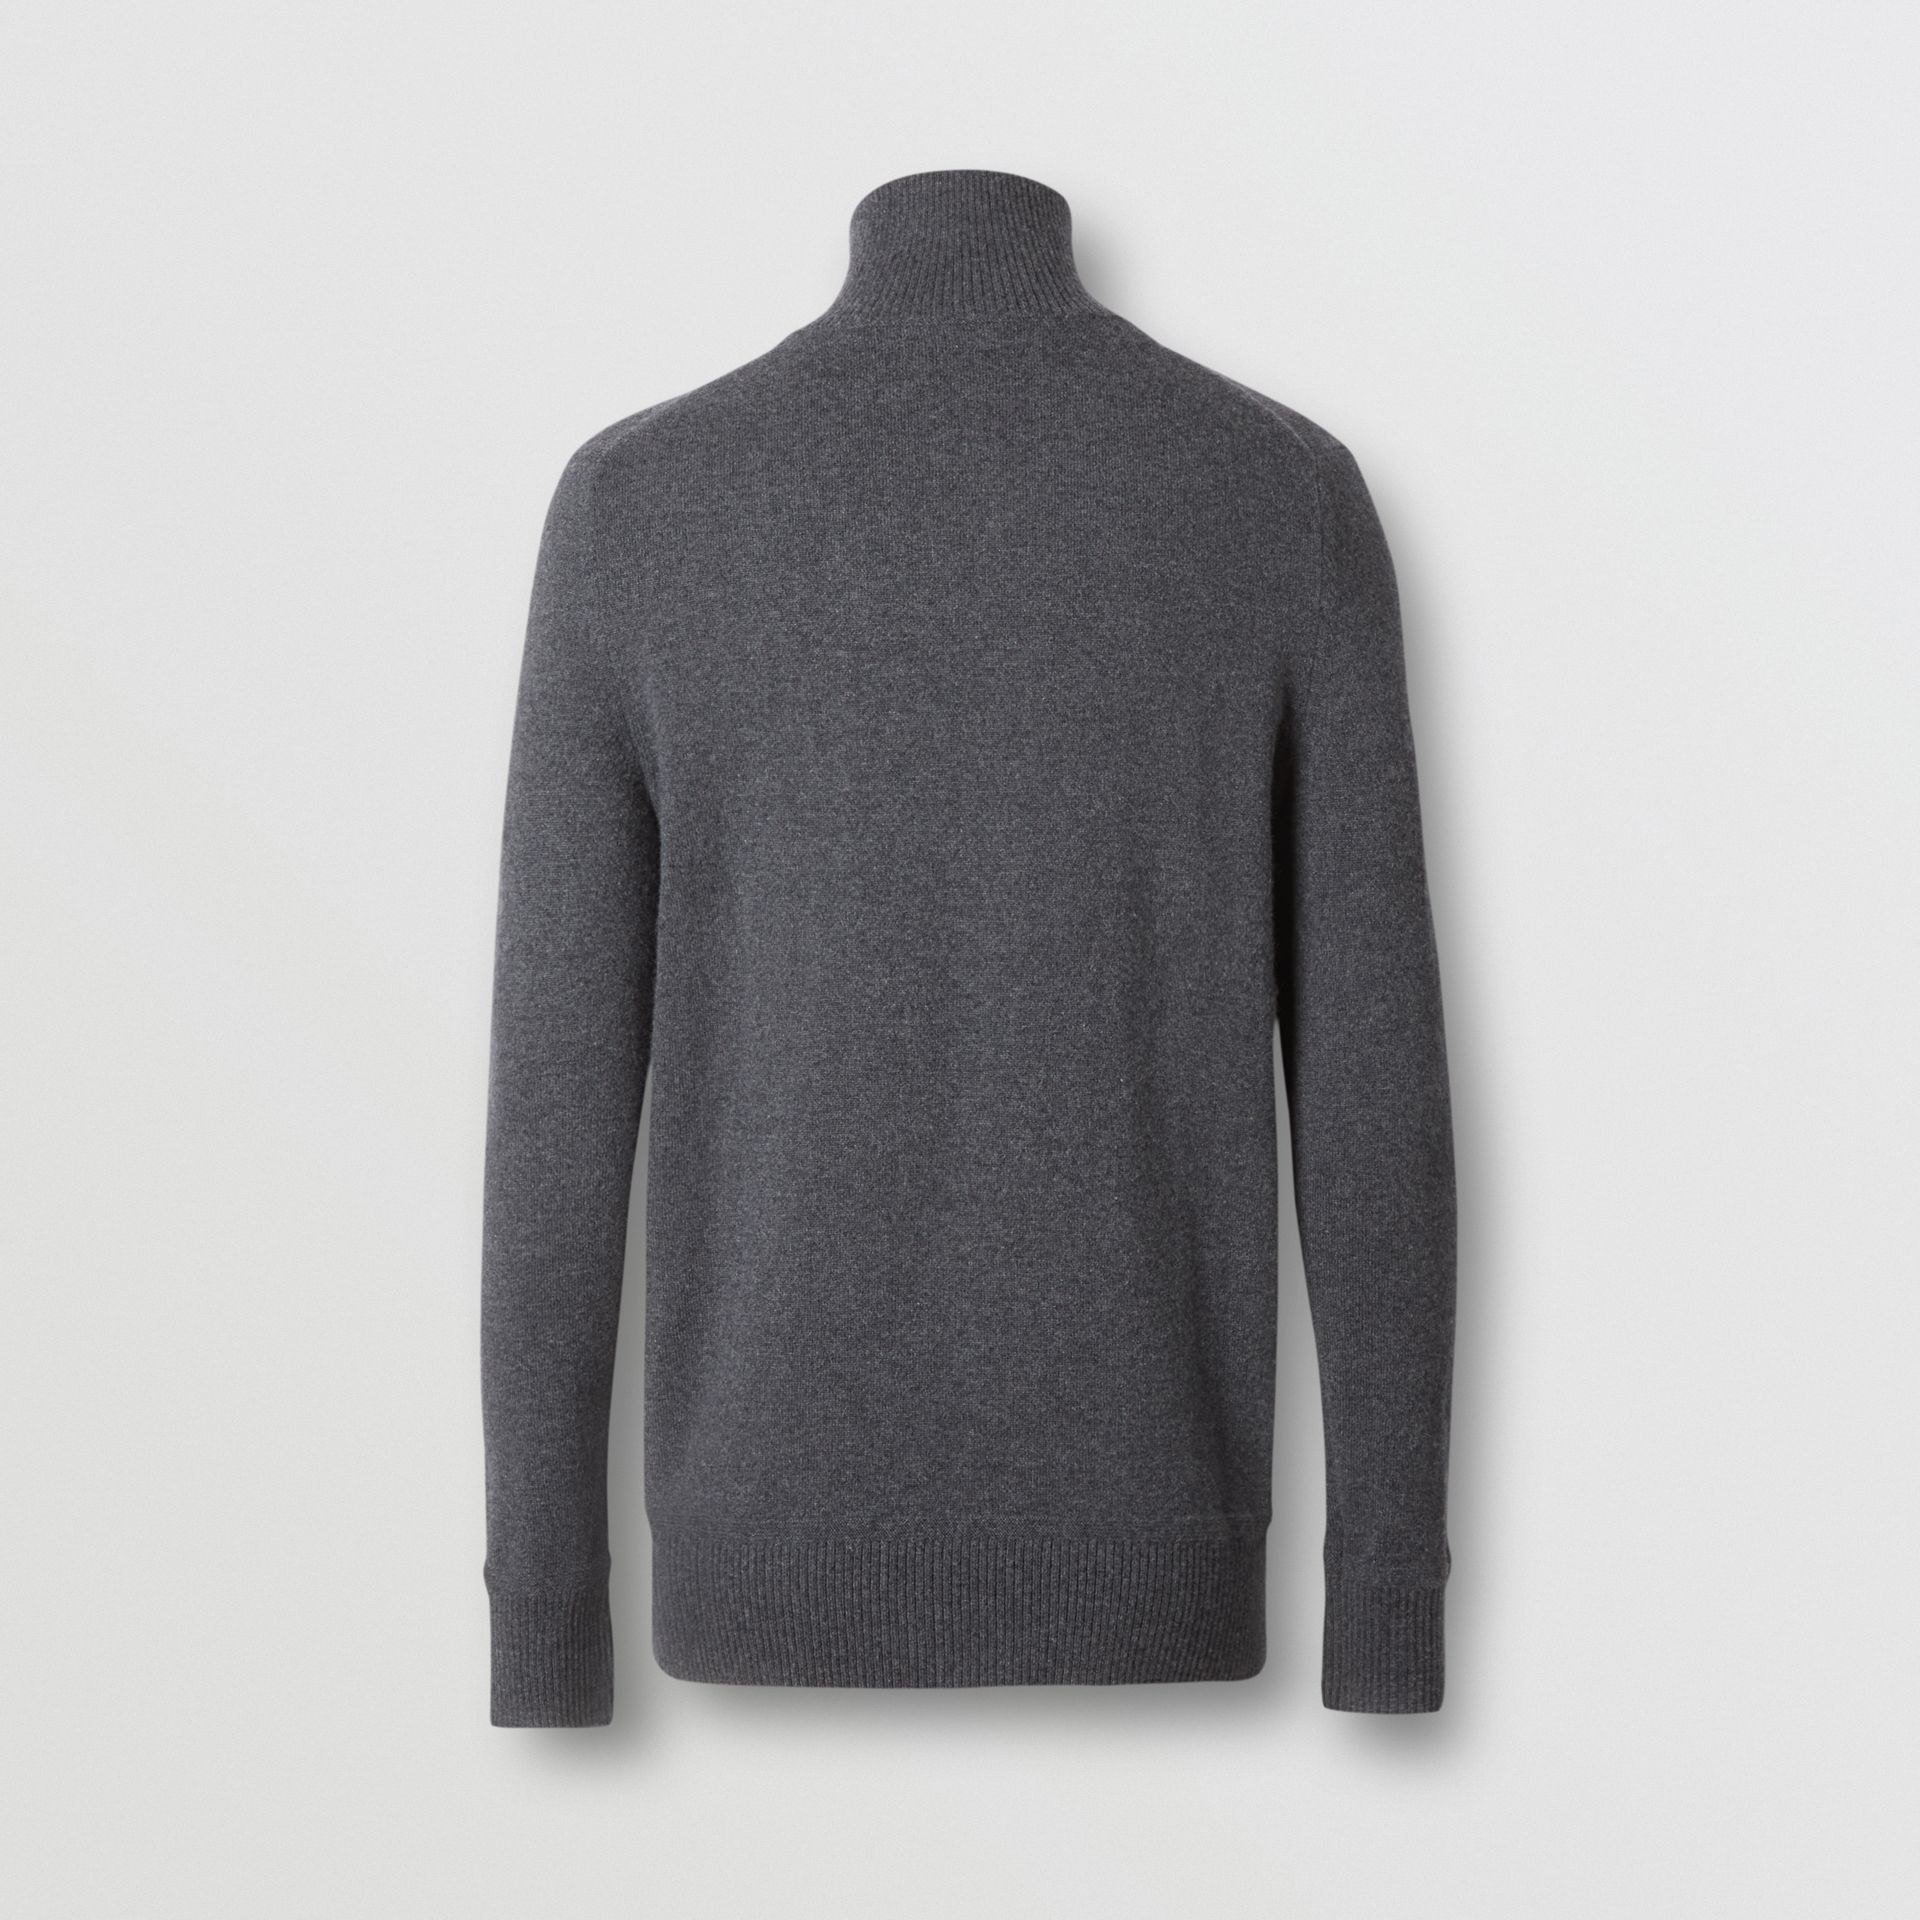 Monogram Motif Cashmere Funnel Neck Sweater in Steel Grey - Men | Burberry - gallery image 6